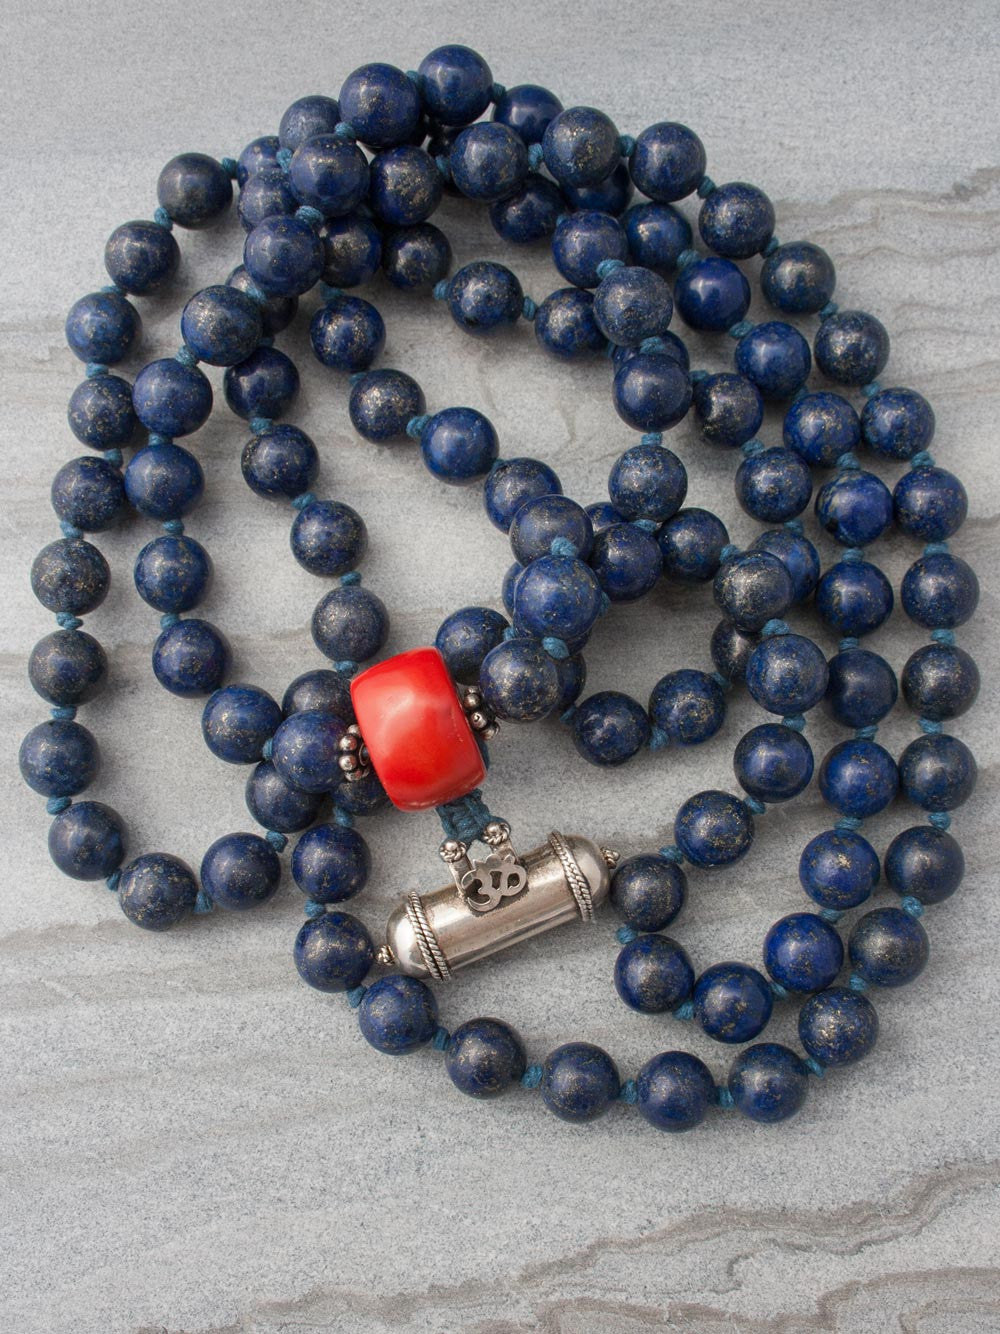 Unstruck Om Mala, for meditation and awareness, in 12mm Lapis Lazuli, has a stunning coral Guru bead and silver Mantra talisman: full view.